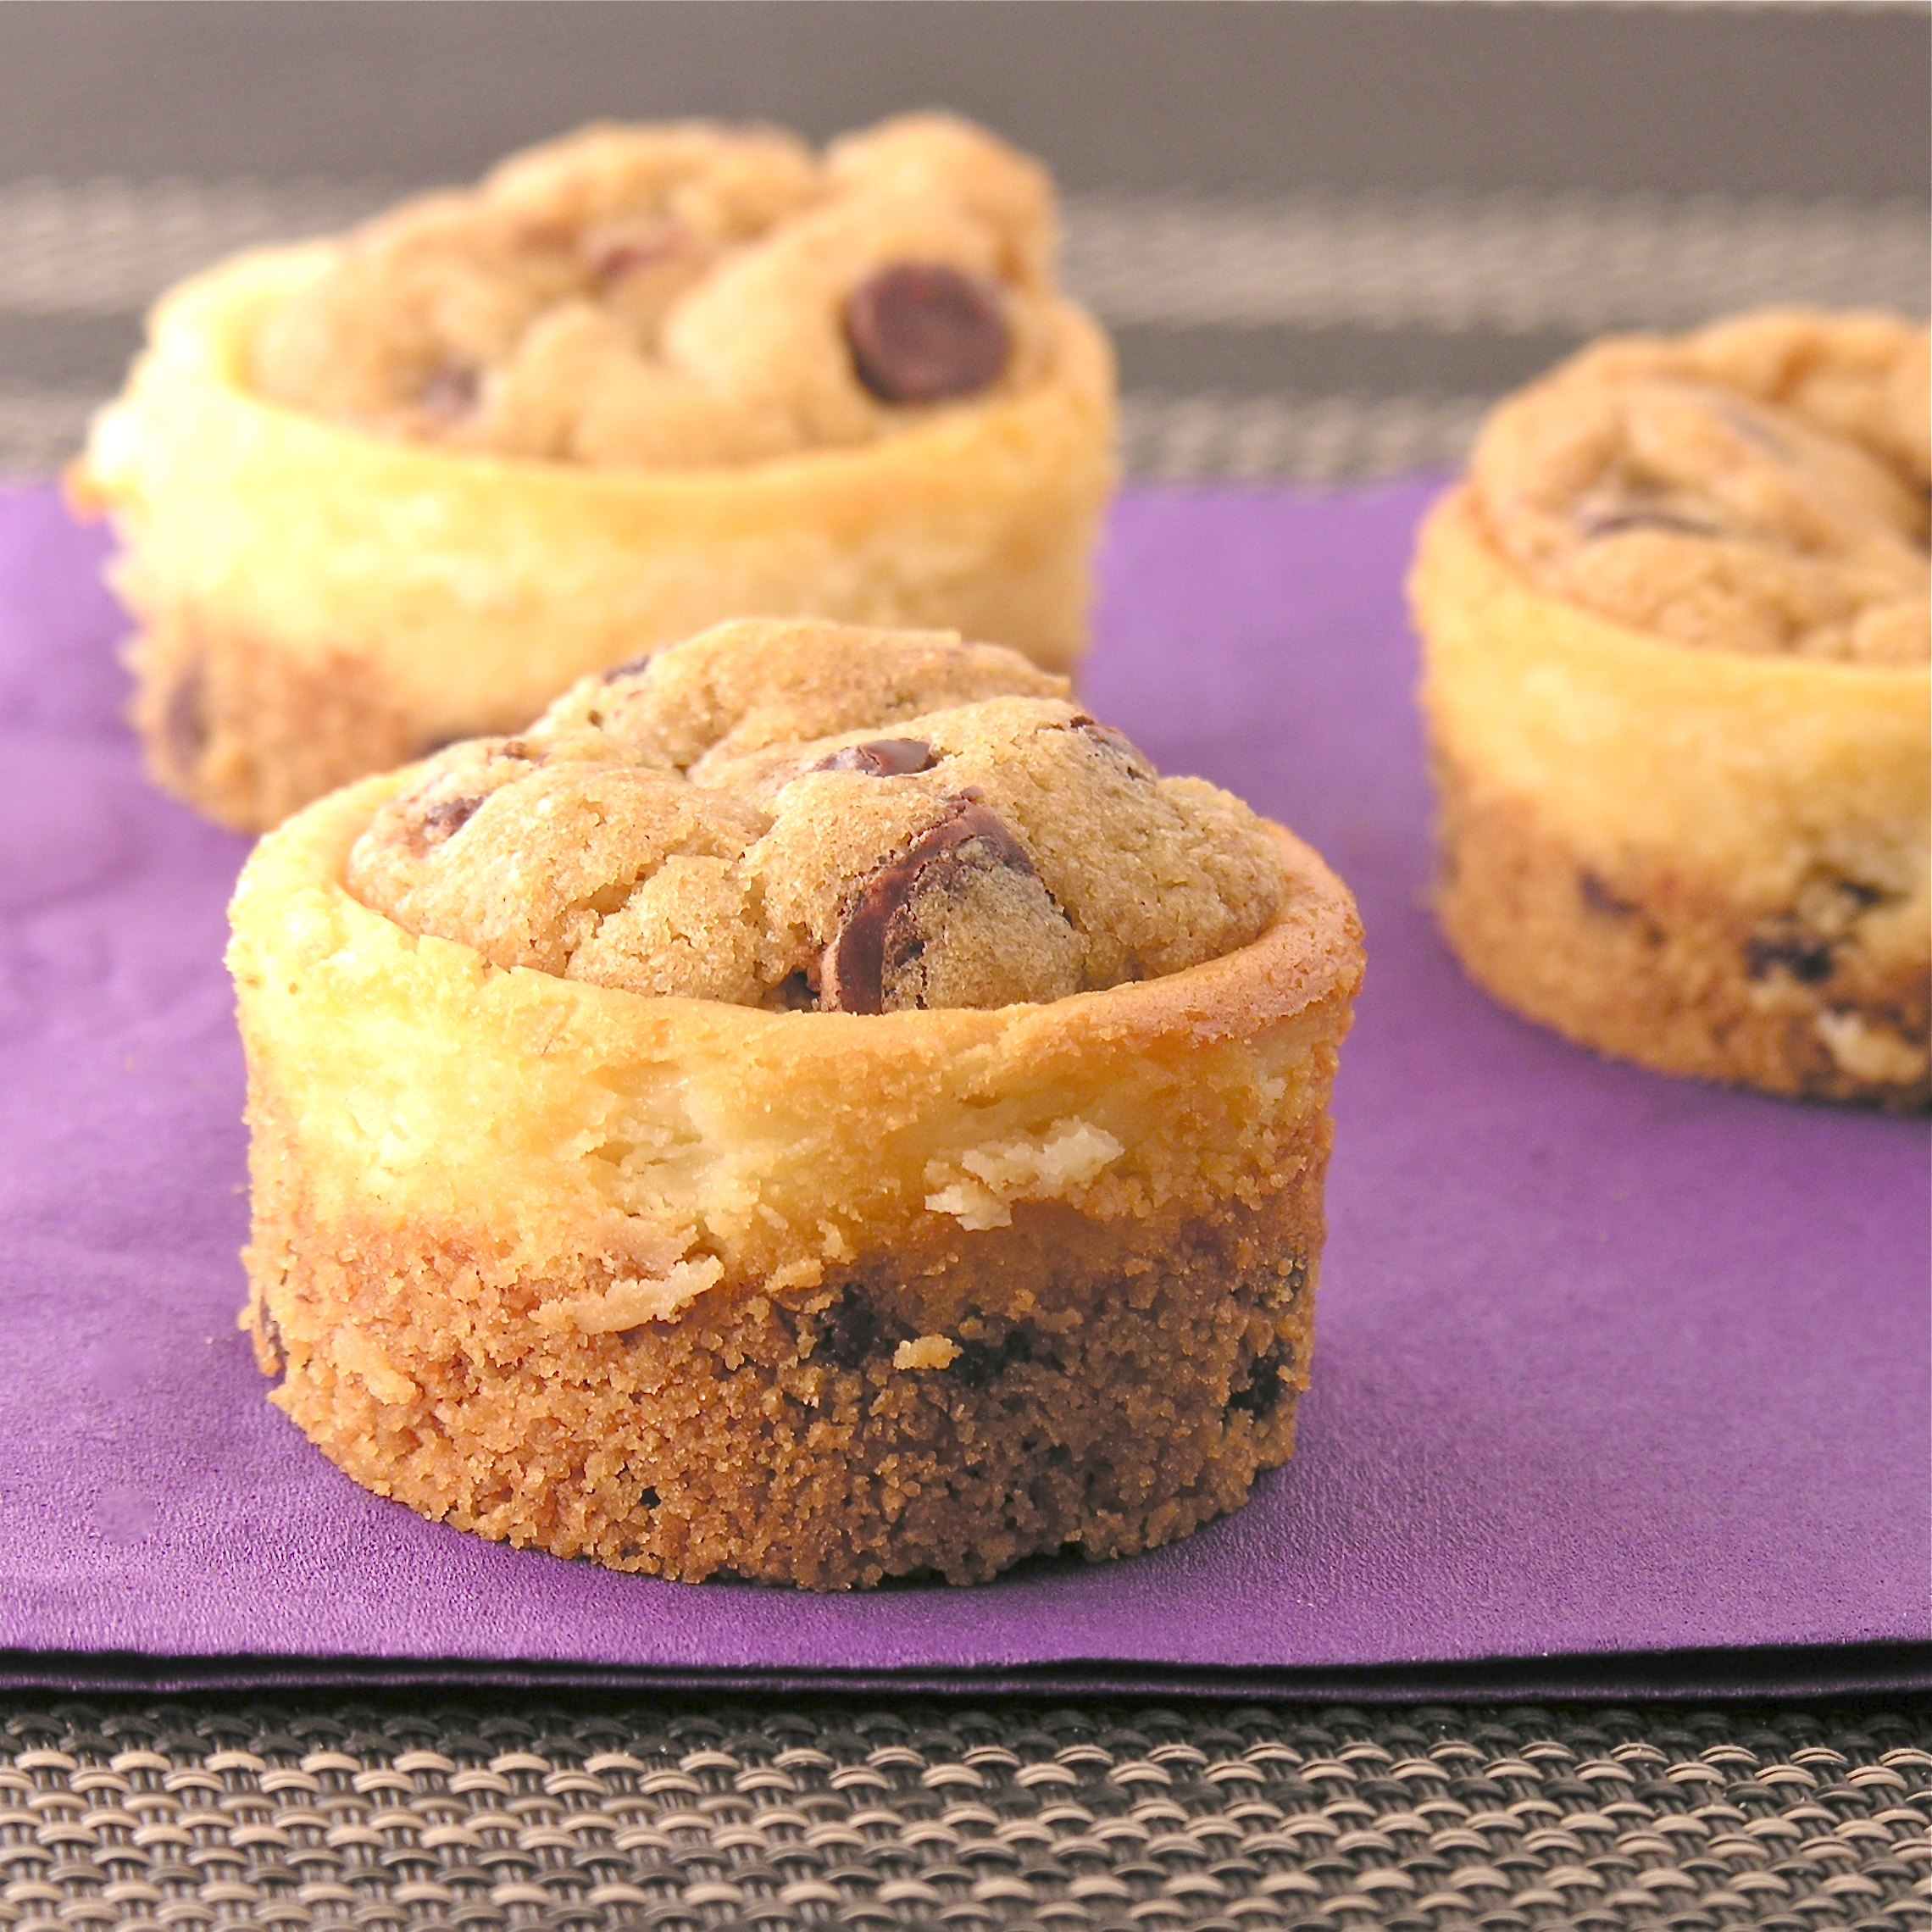 chips in the crust and adorable little chocolate chip cookies ...